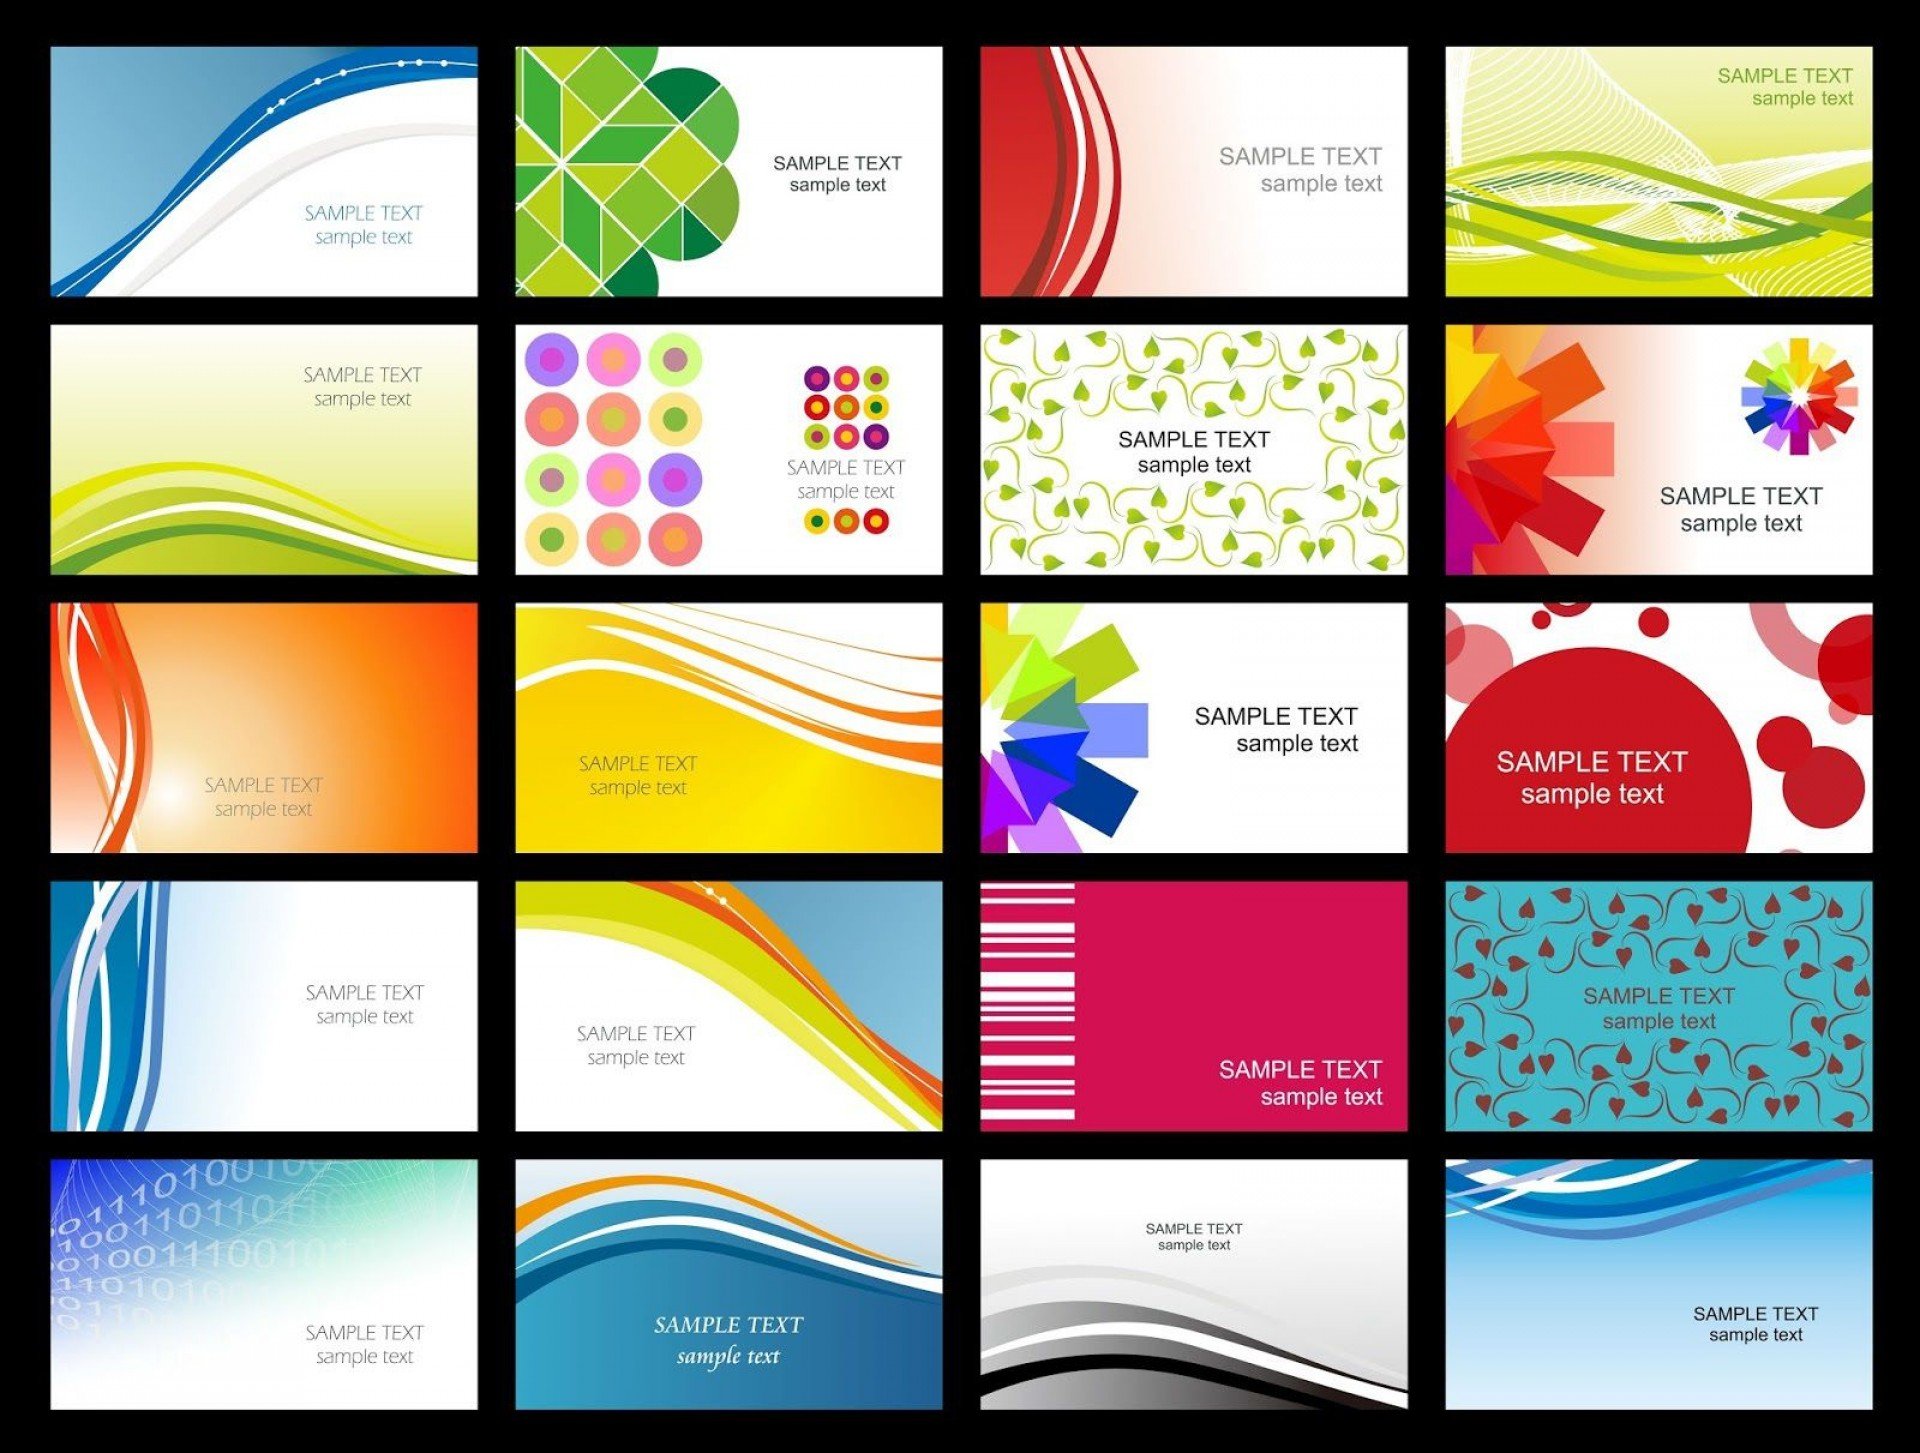 008 Wonderful Simple Busines Card Template Free Download Example  Visiting Design Psd File Minimalist1920